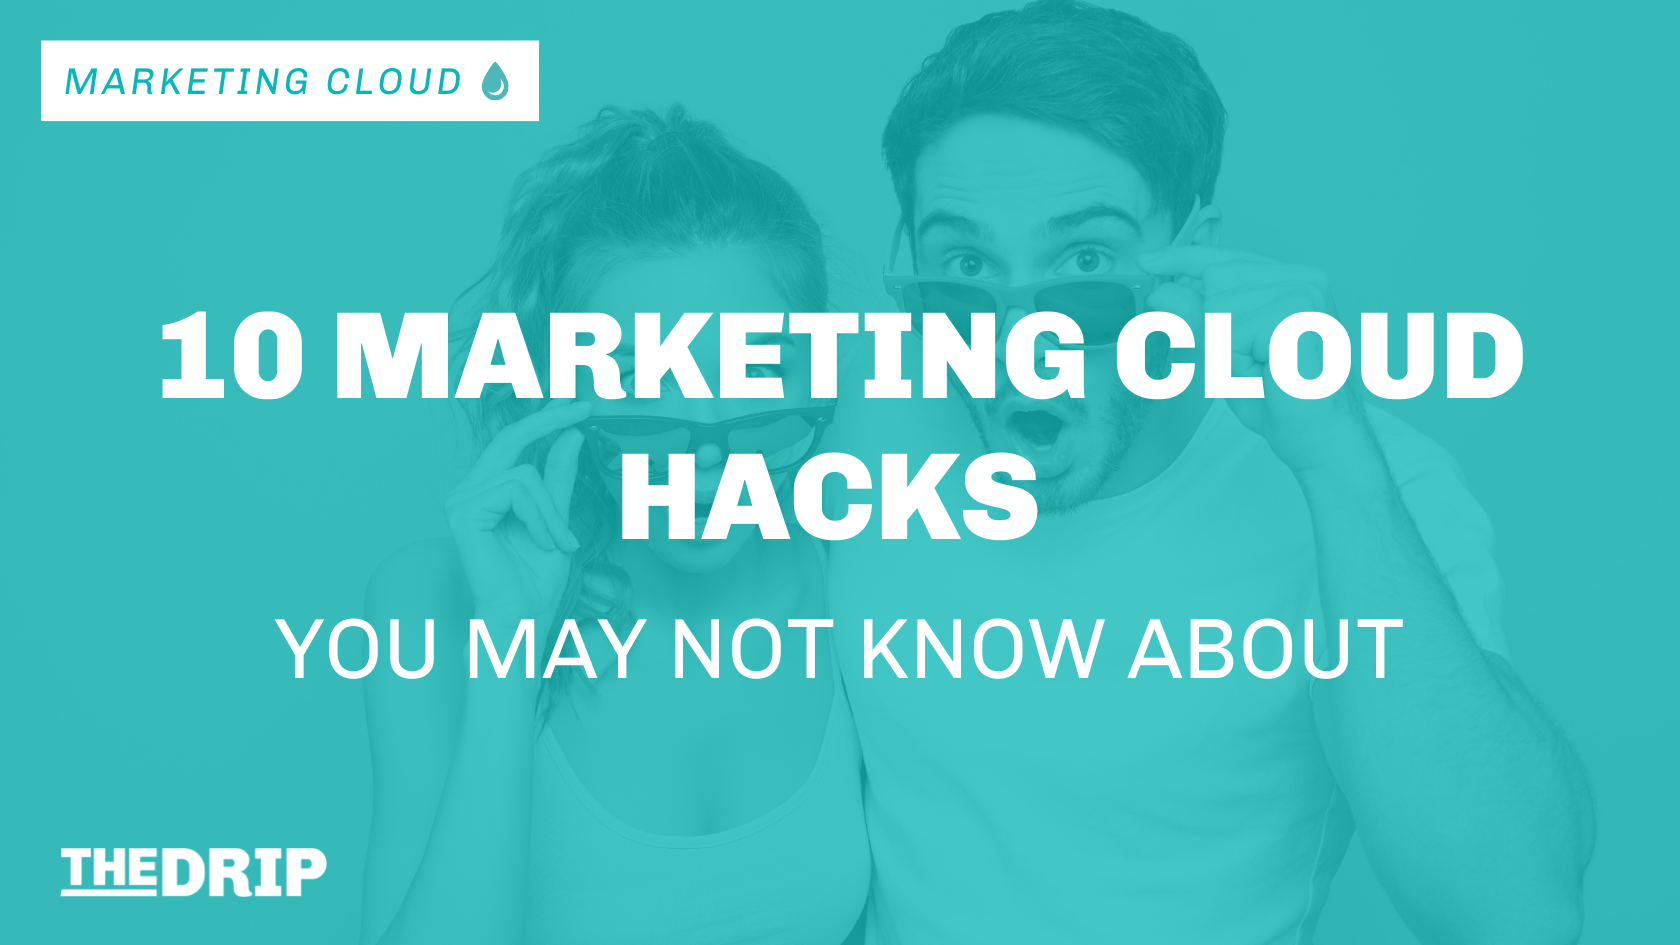 10 Marketing Cloud Hacks You May Not Know About